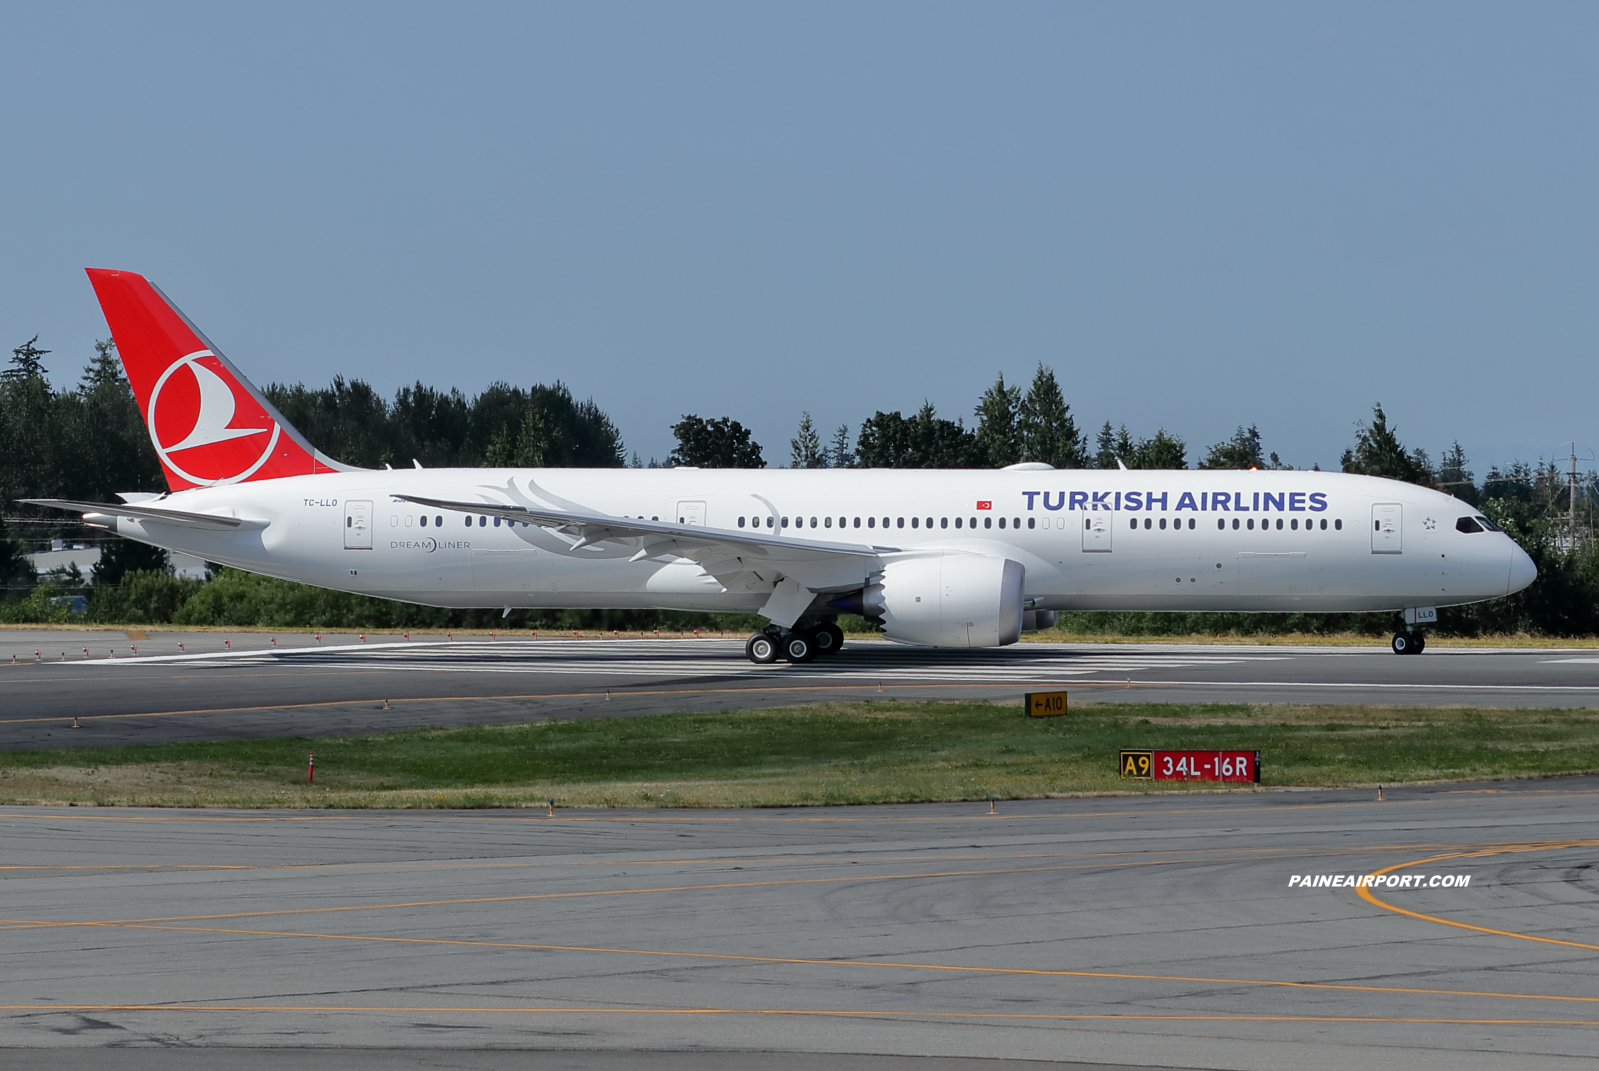 Turkish Airlines TC-LLO at KPAE Paine Field